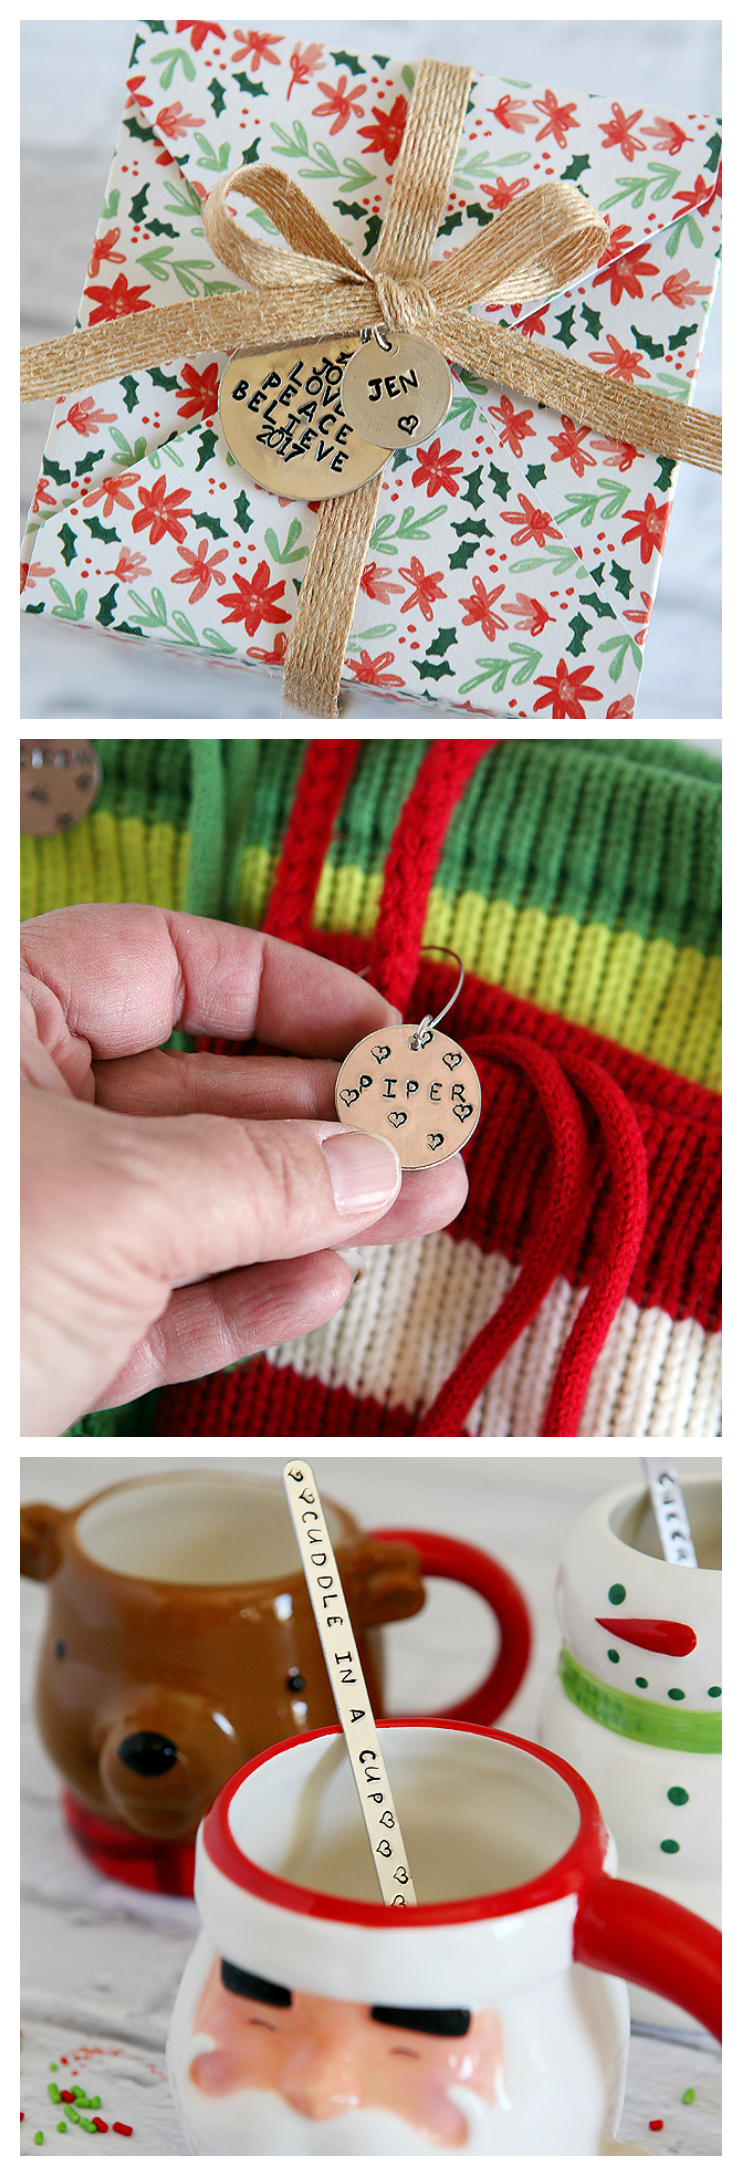 Stamped Metal Gift Tags - DIY Metal Gift Tags - Hot Cocoa Stir Sticks - Stocking Charms